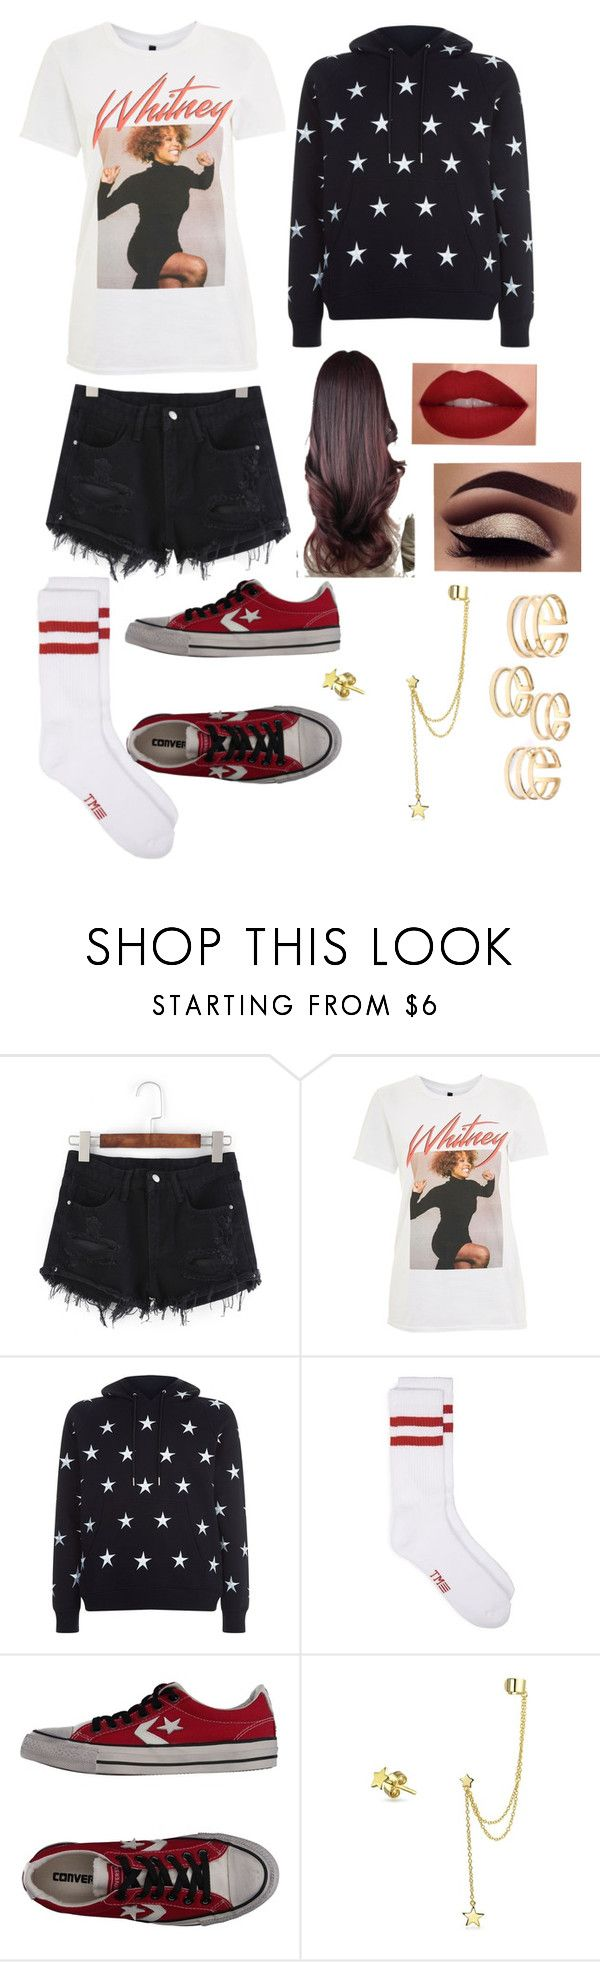 BTS Spring Day inspired outfit - Jungkook